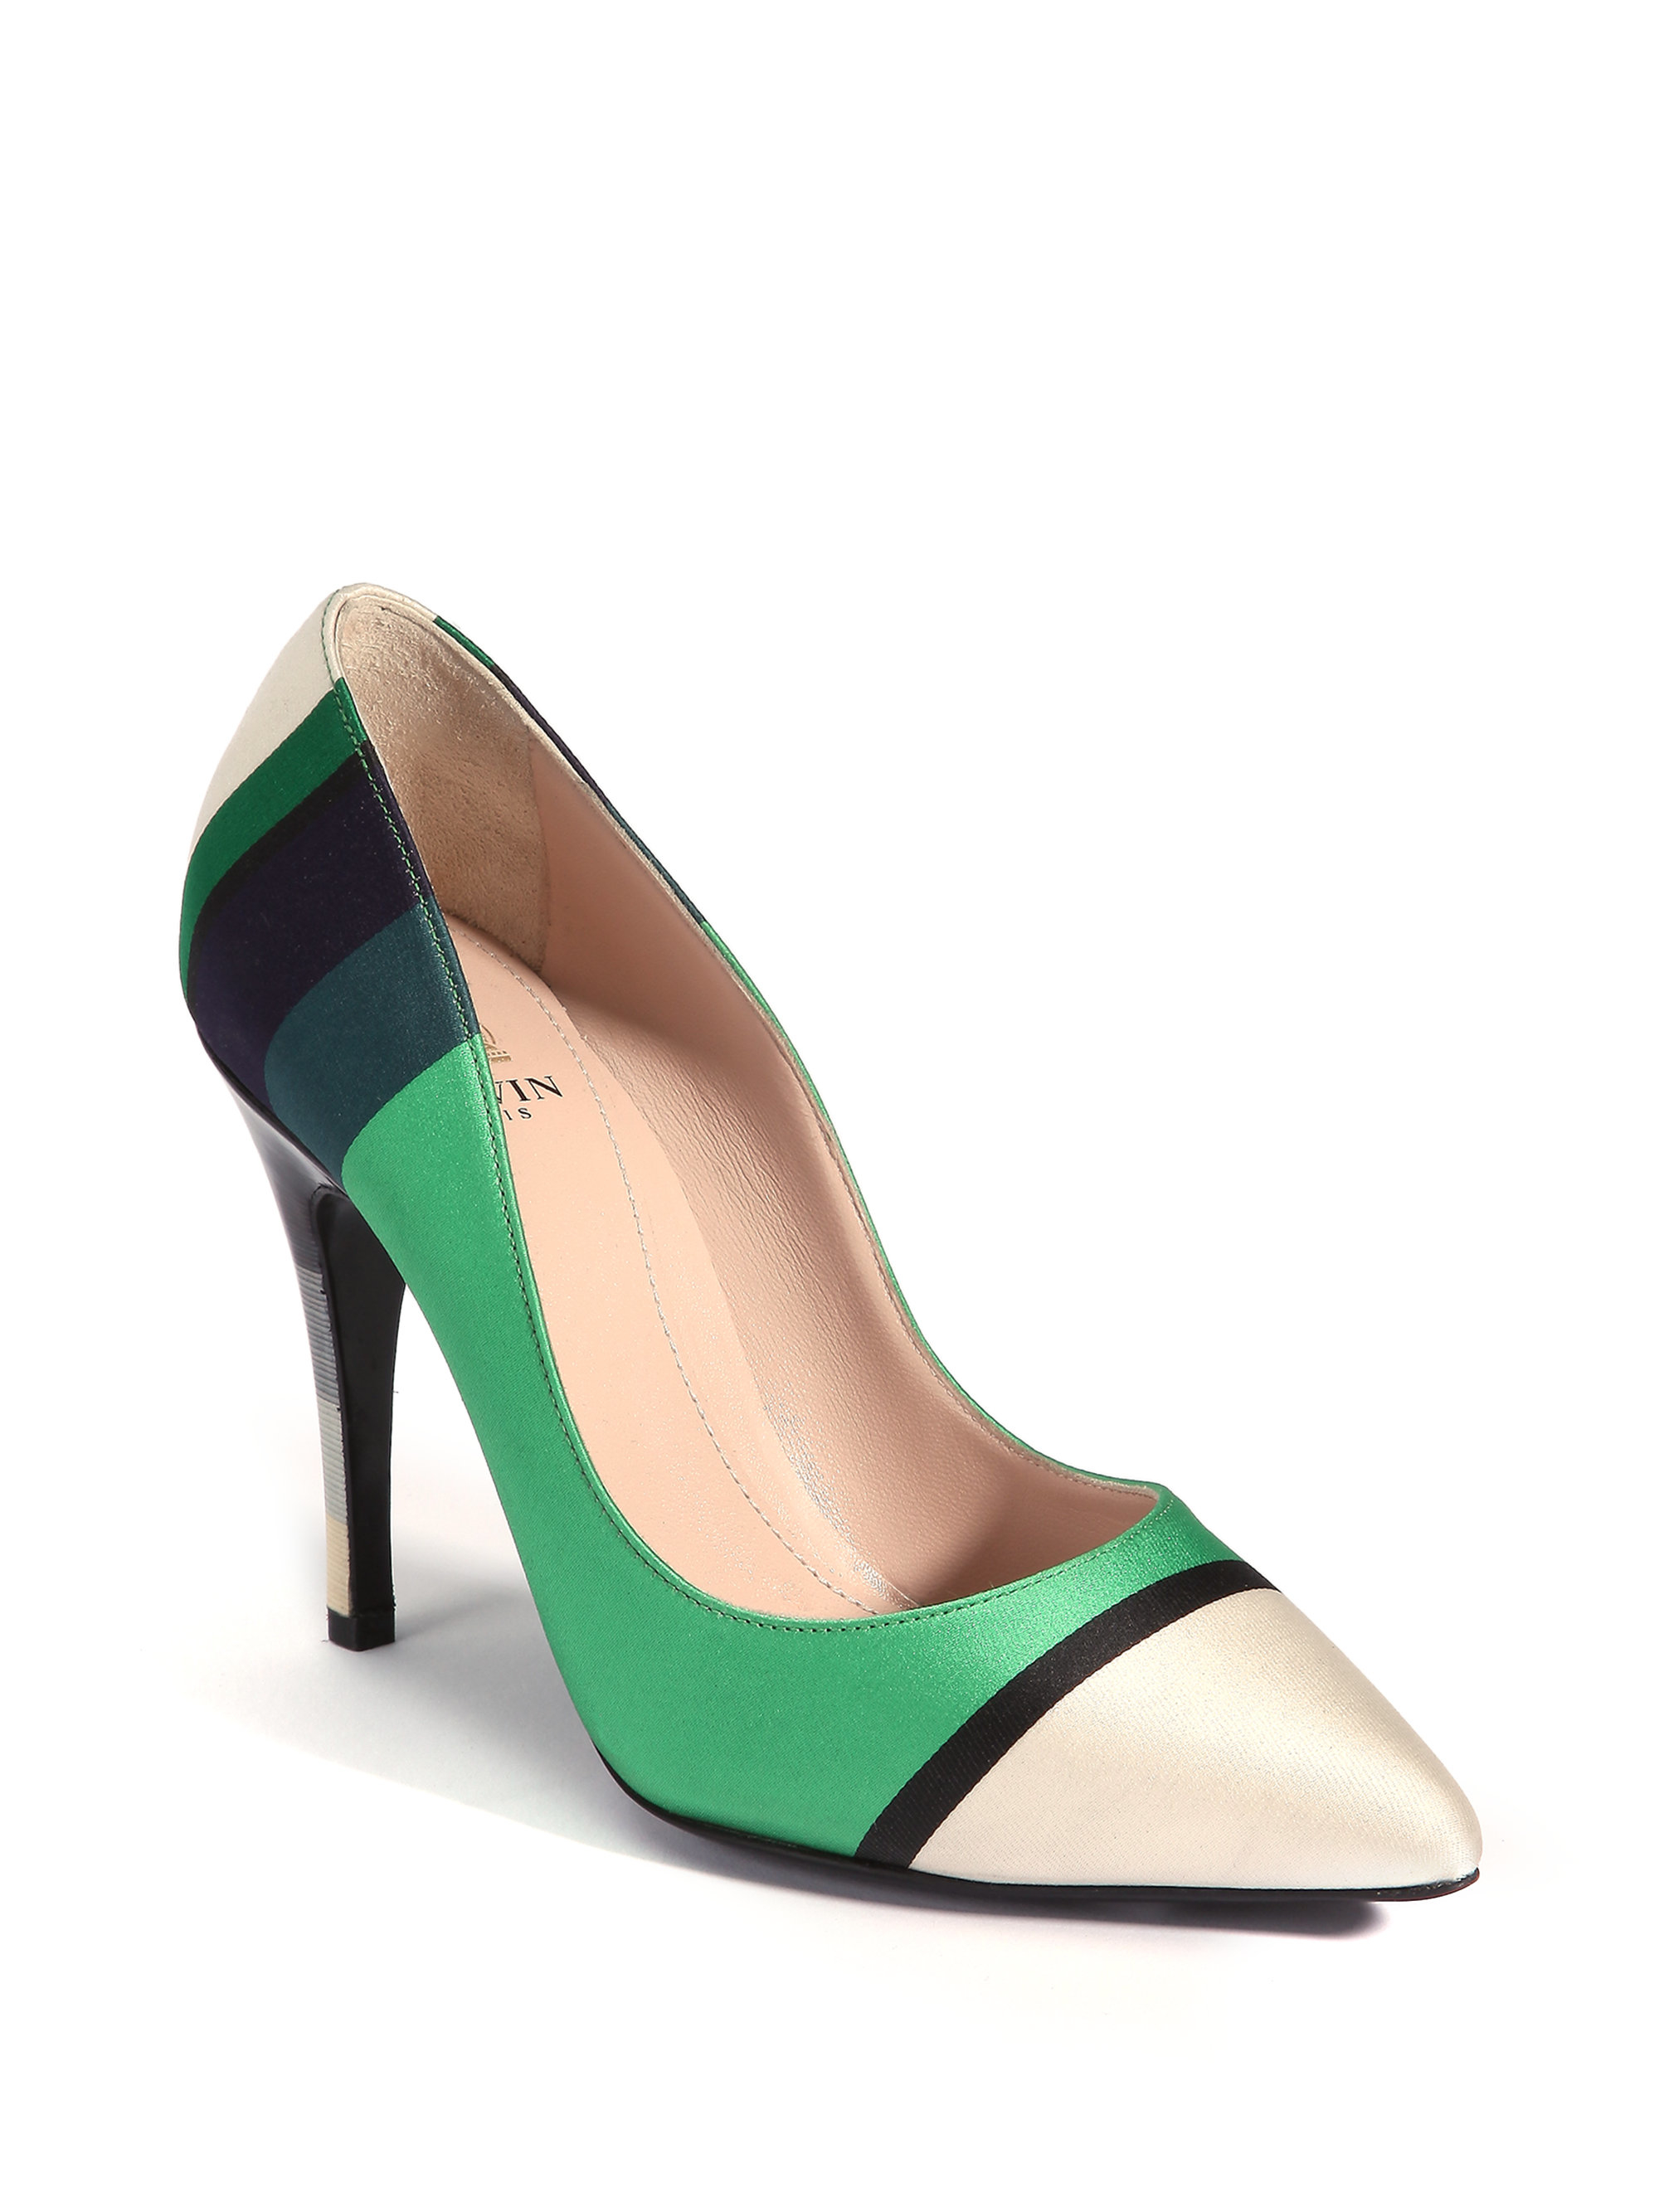 a06afaf69c6 Lyst - Lanvin Striped Point-toe Pumps in Green